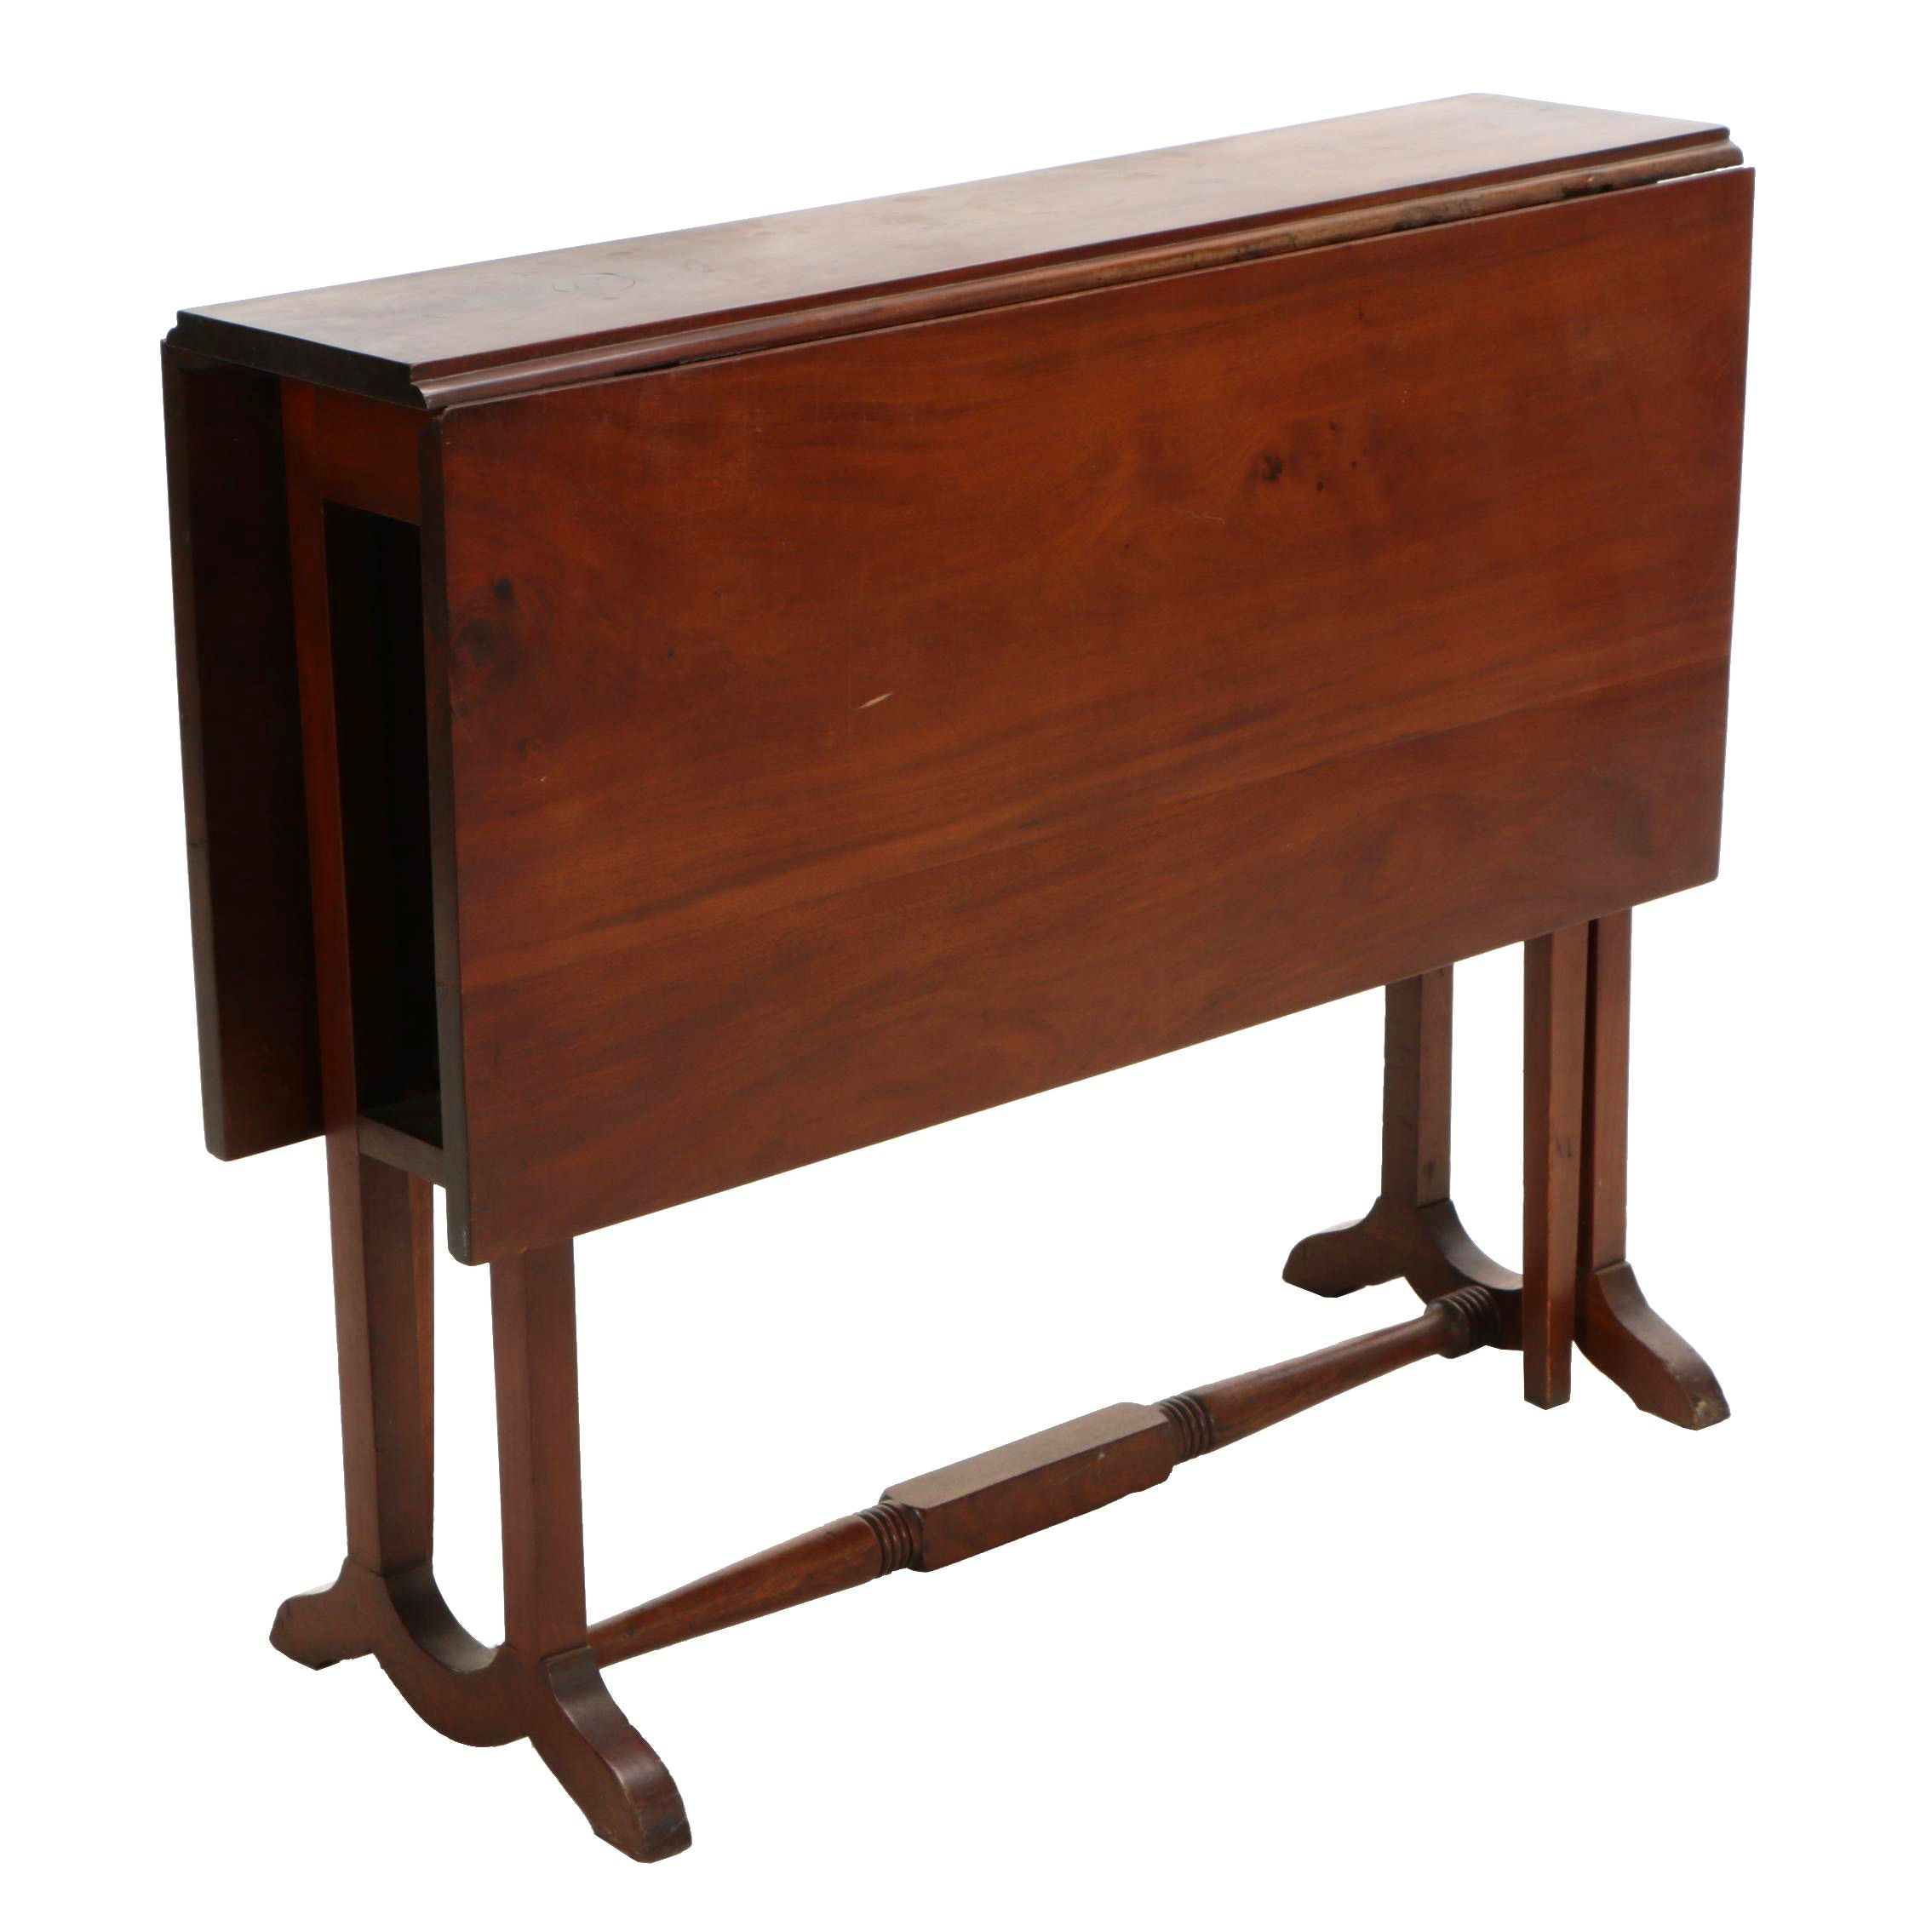 Edwardian Mahogany Sutherland Table, Early 20th Century